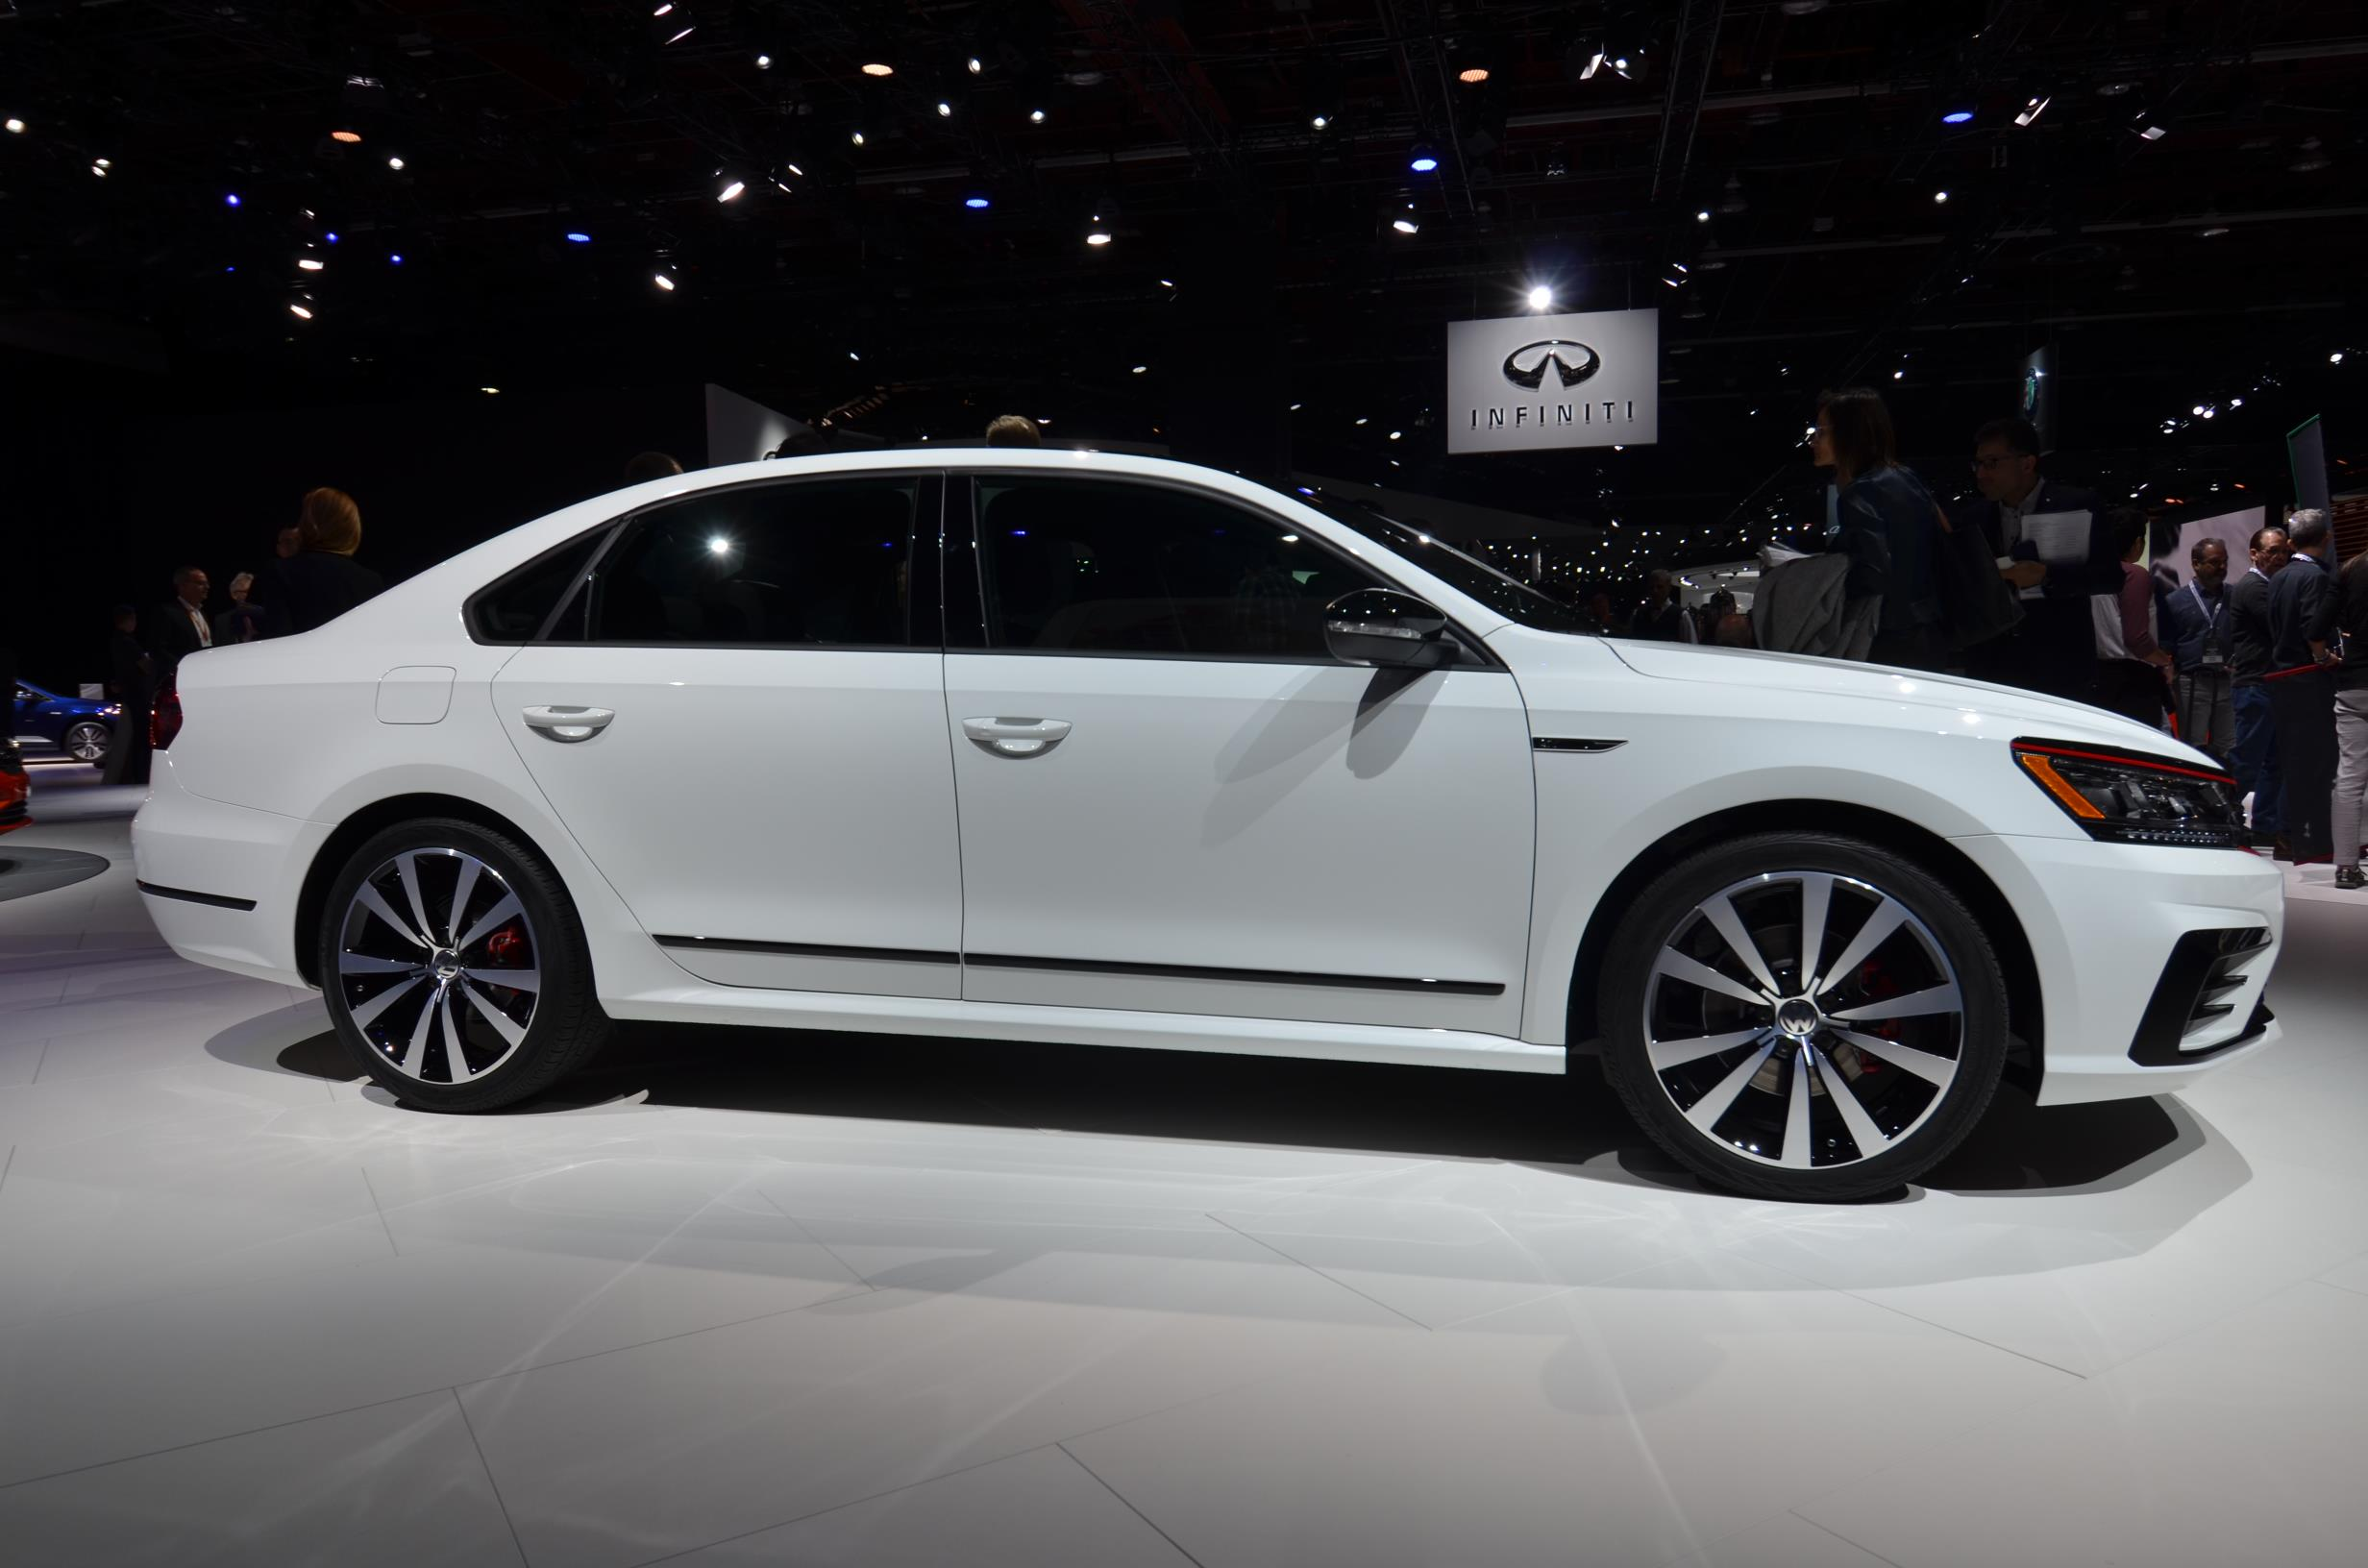 2018 Volkswagen Passat Gt Is A Sweet Swan Song In Detroit HD Wallpapers Download free images and photos [musssic.tk]